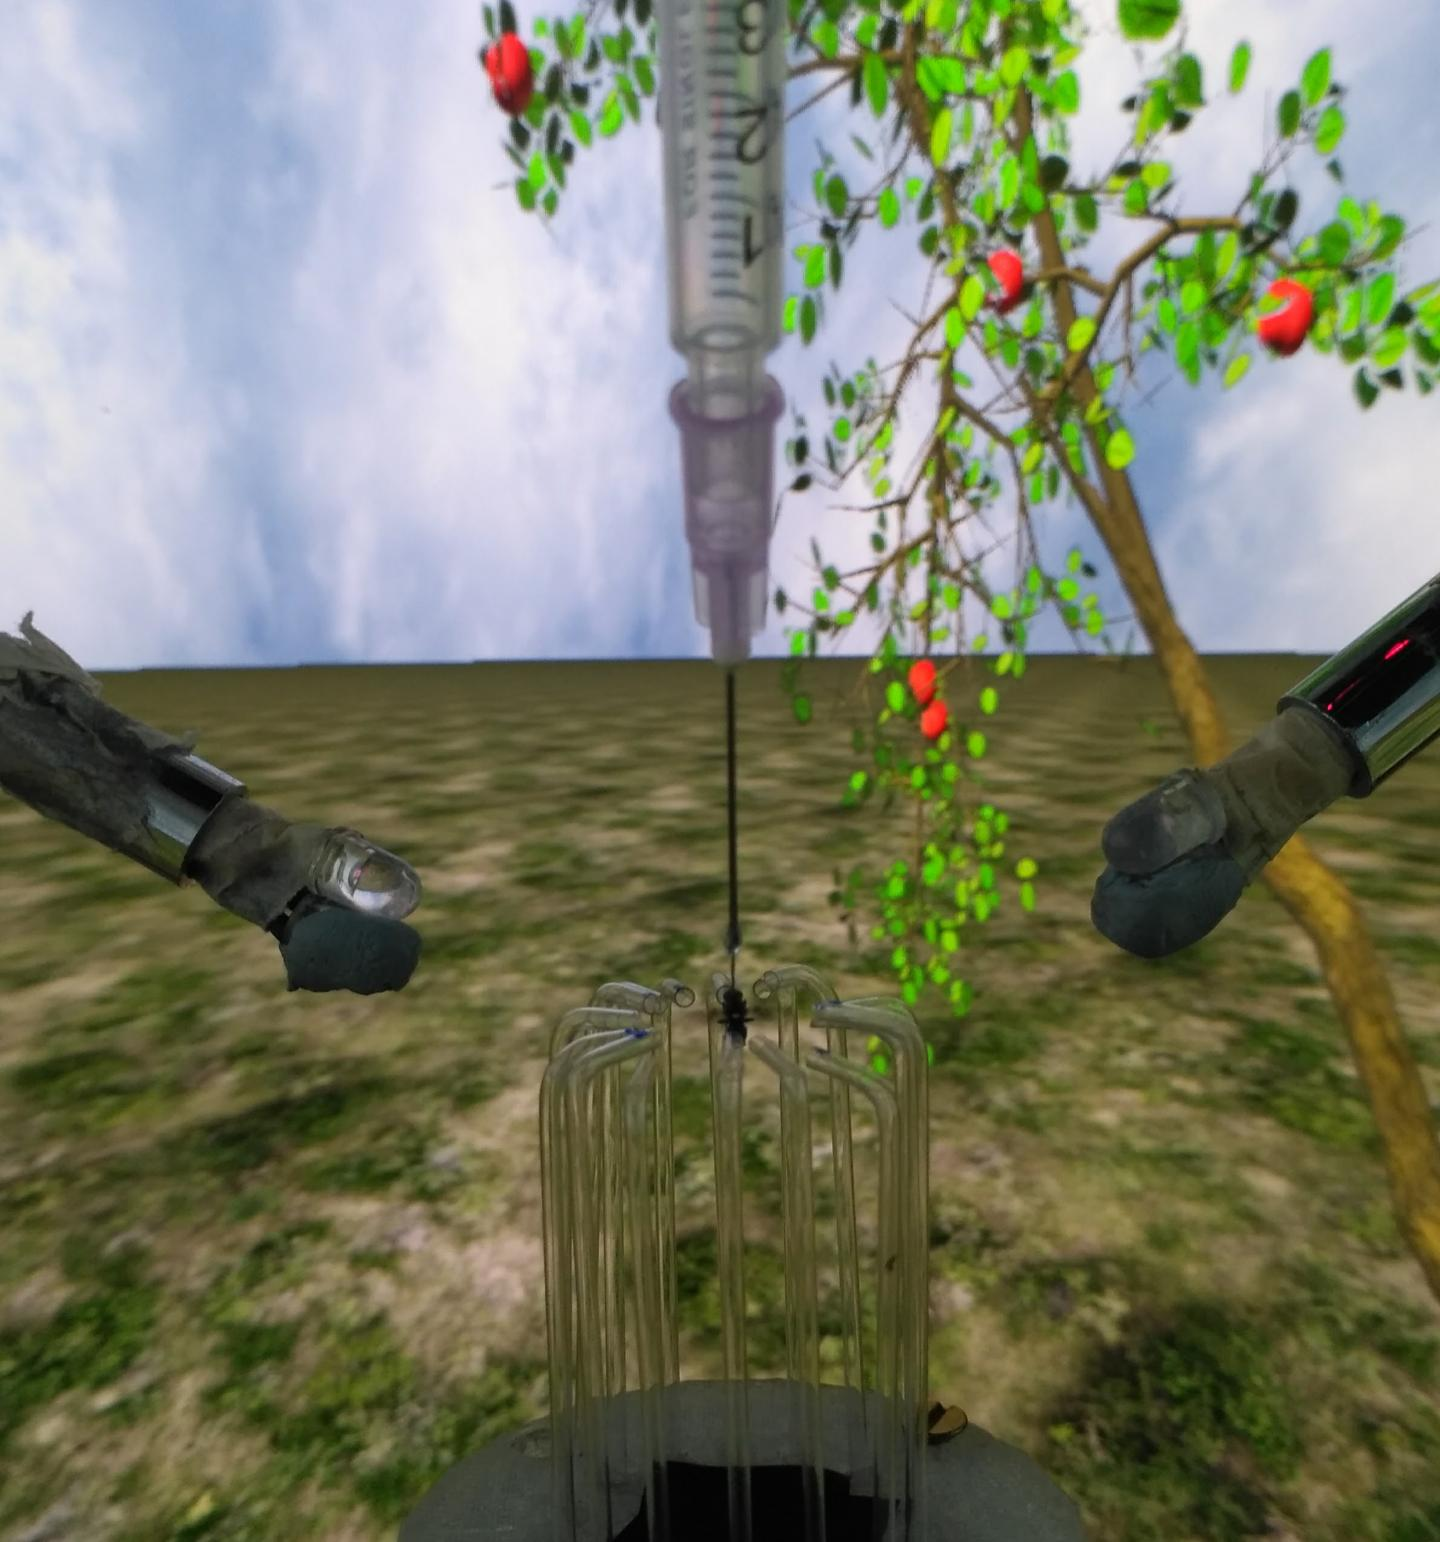 A tethered apple fly (Rhagoletis pomonella) responding to airflow and odour stimuli in a multimodal virtual reality arena.